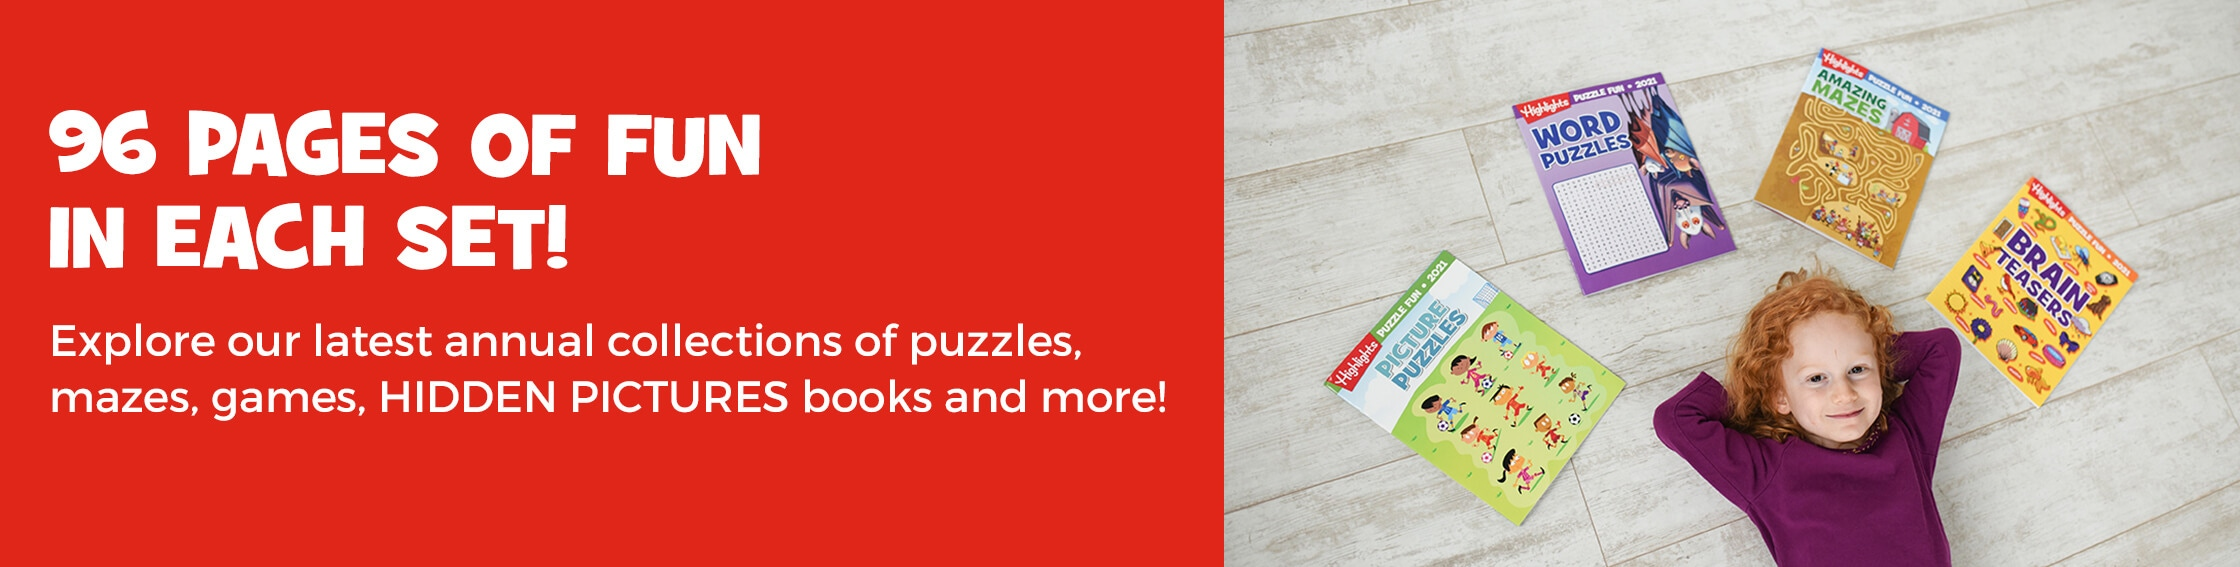 Get 96 pages of fun in each 4-book set. Explore our latest annual collections of puzzles, mazes, games, HIDDEN PICTURES books and more.